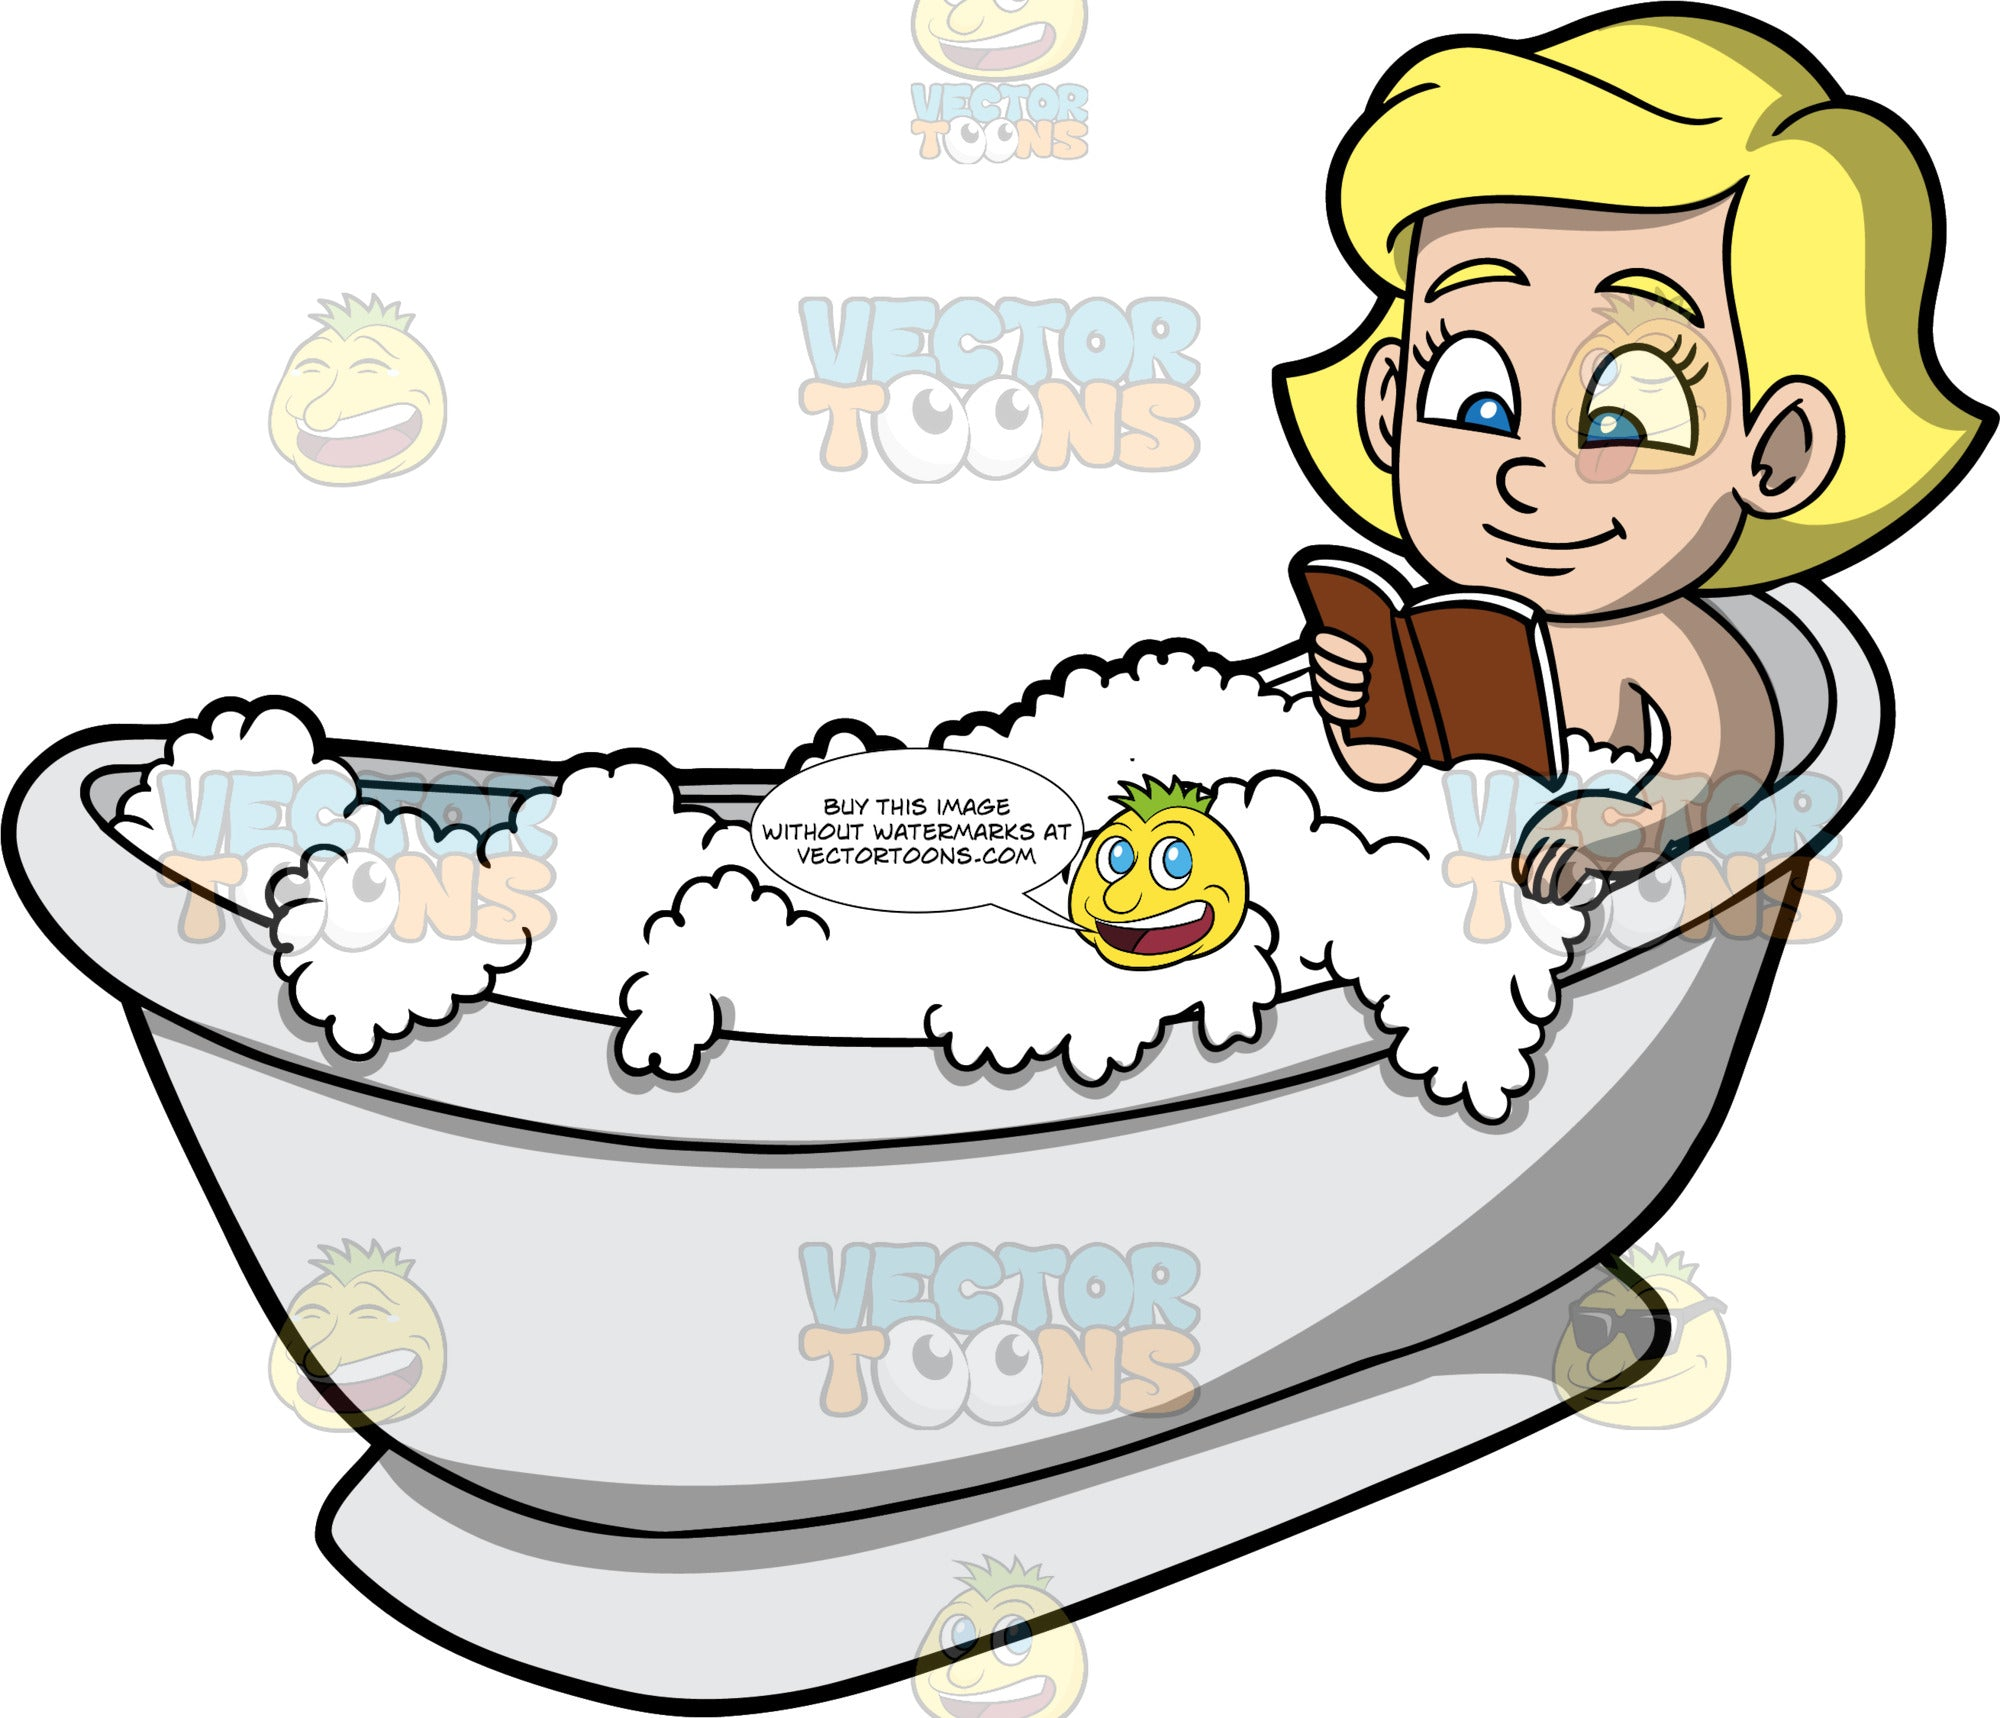 Young Mary Reading In The Tub. A blonde girl lying in a tub filled with bubbles, reading a book with a brown cover